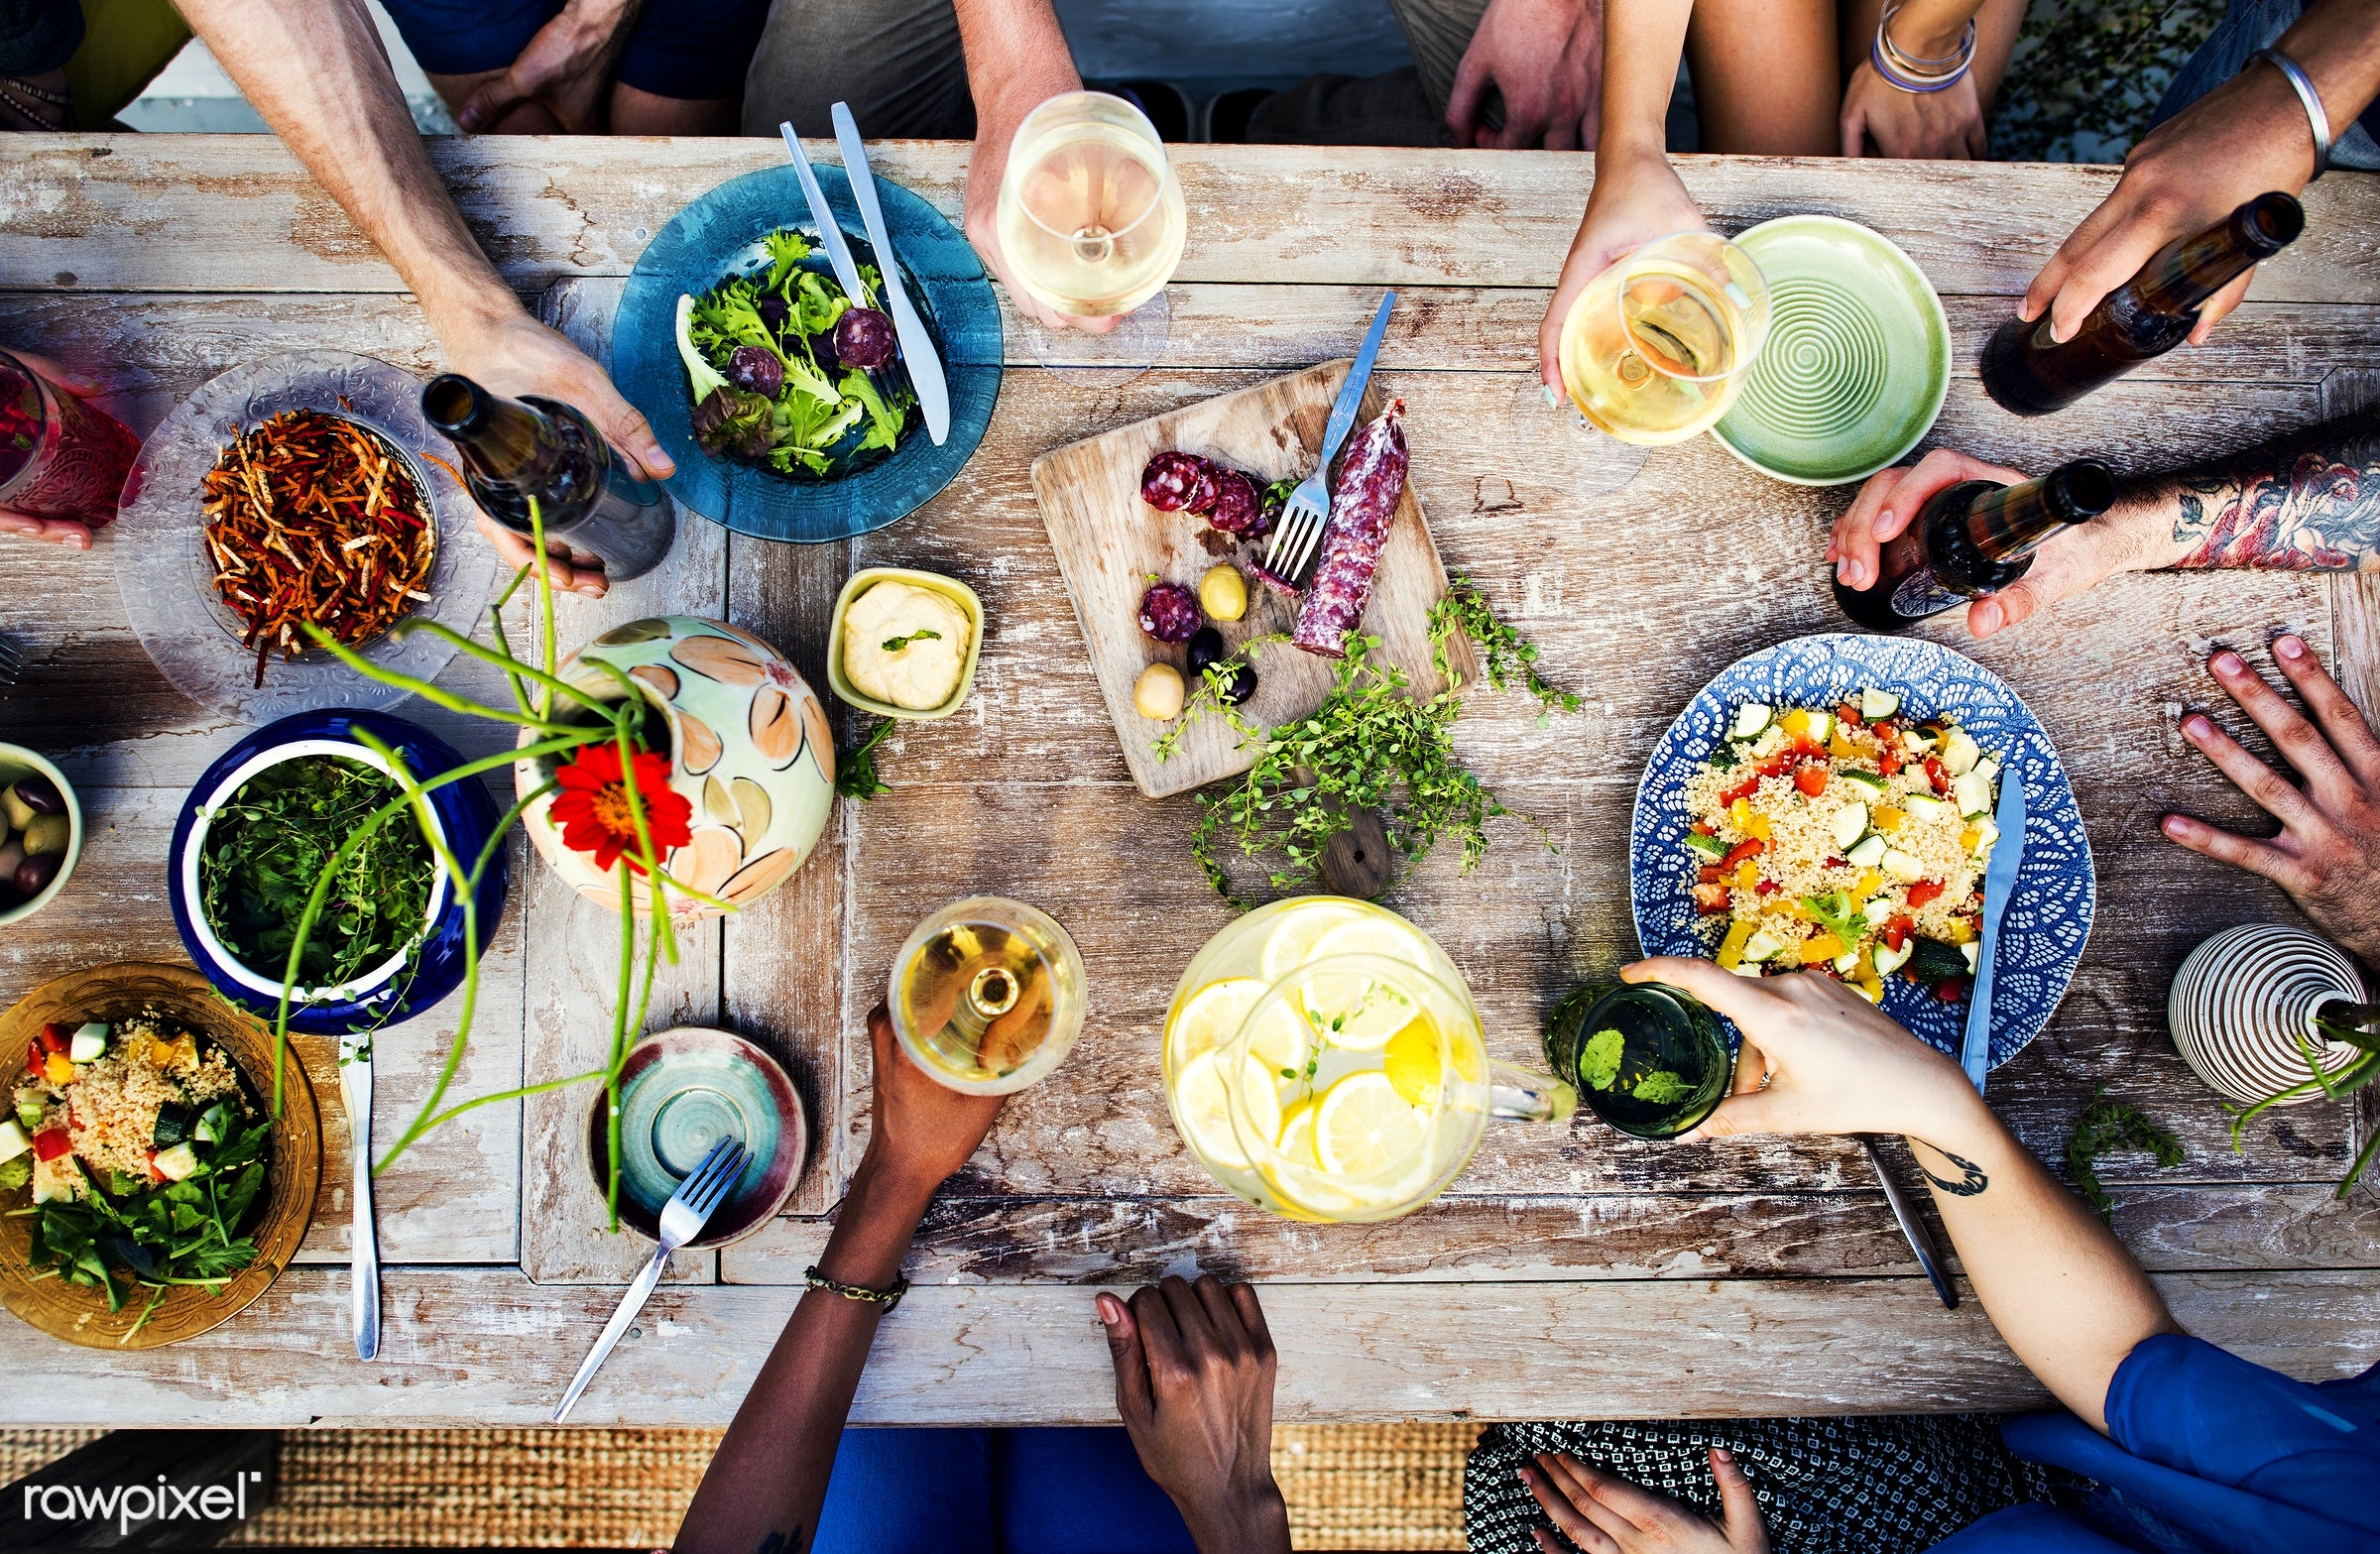 Friends having a summer party - salad, meal, beer, cook, colorful, aerial view, allspice, beverage, bowl, champagne, color,...